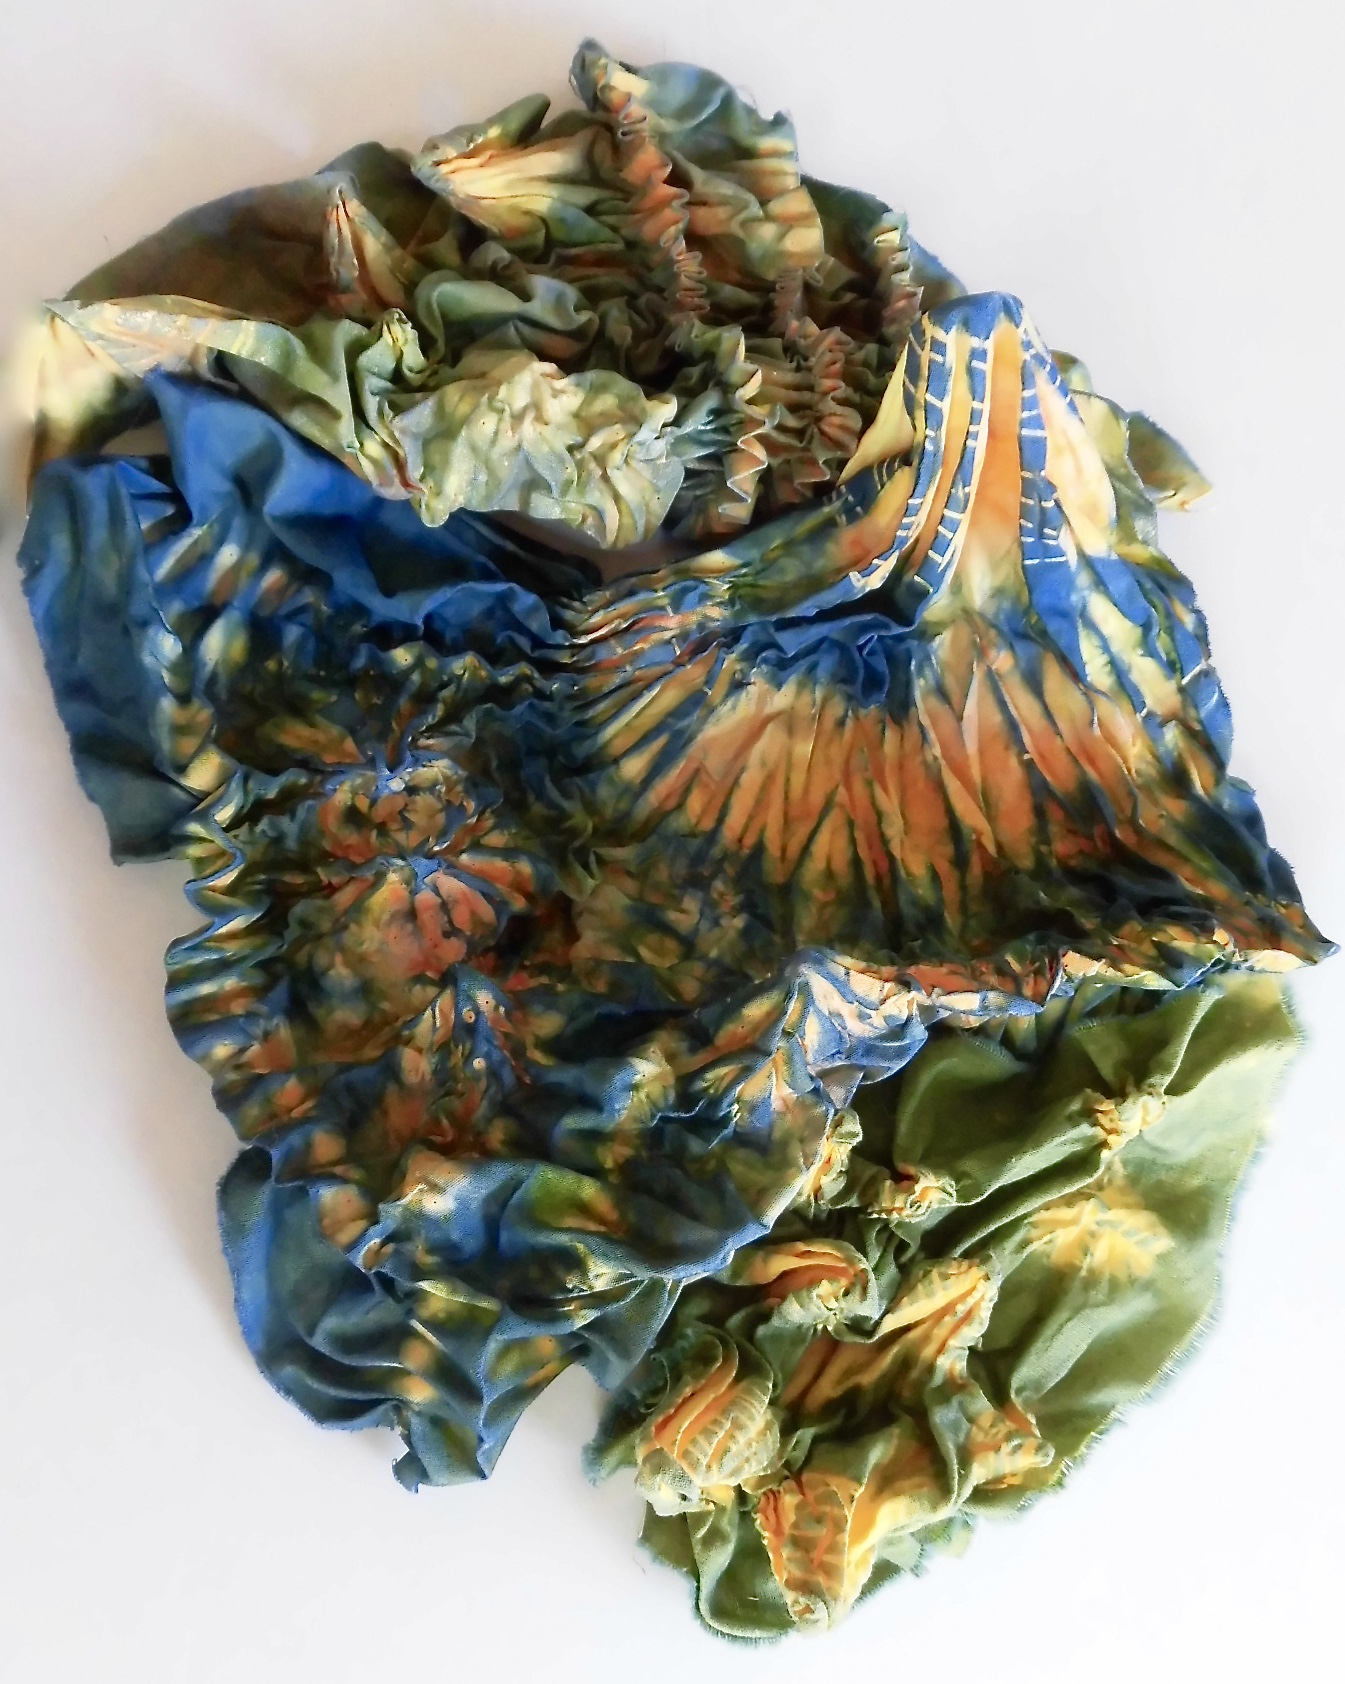 Shibori Stitching and Indigo Dyeing